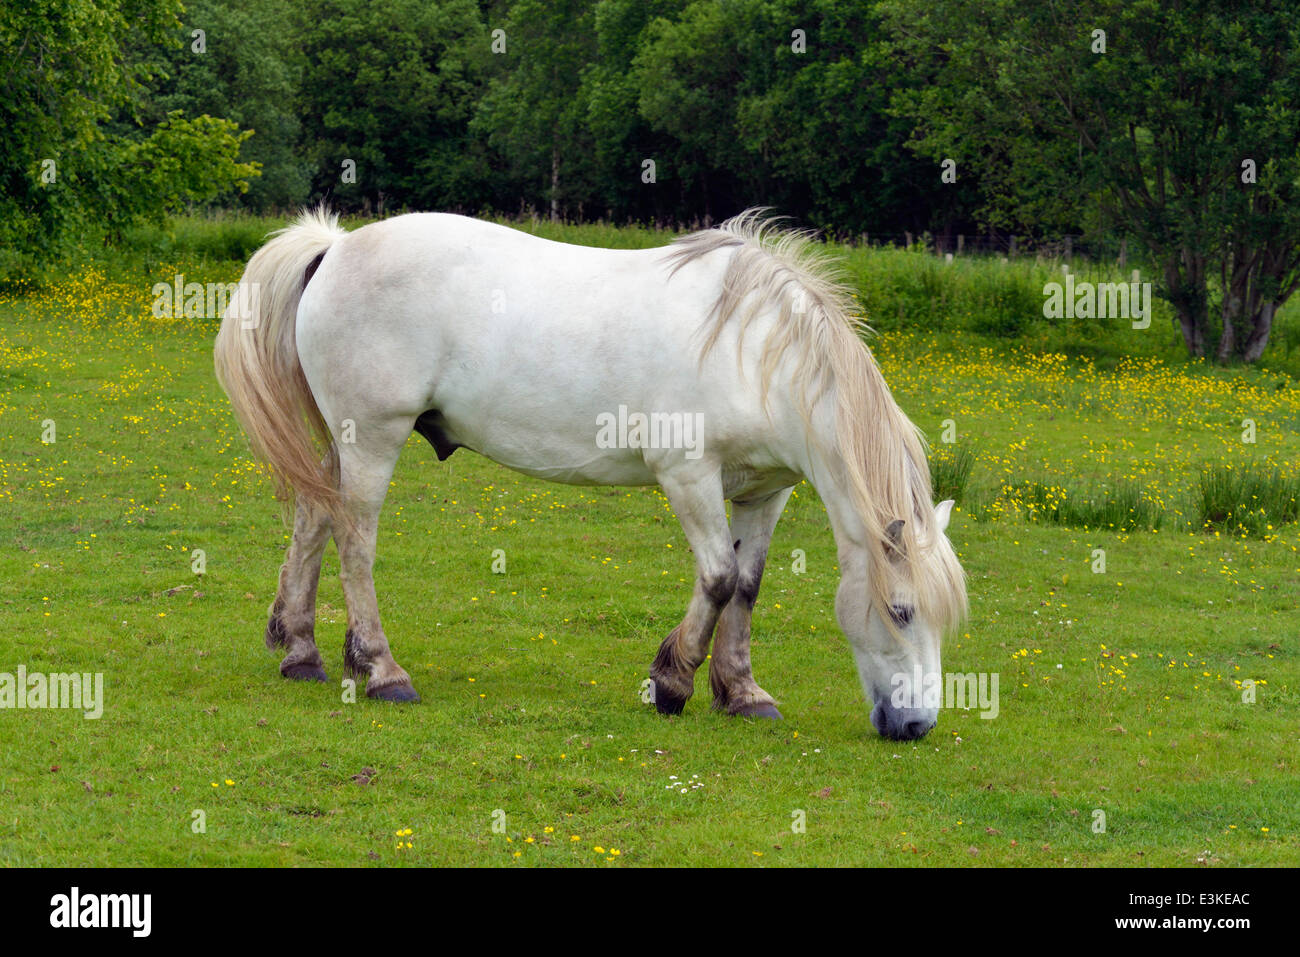 highland-pony-gelding-grazing-falls-of-clyde-nature-reserve-bonnington-E3KEAC.jpg